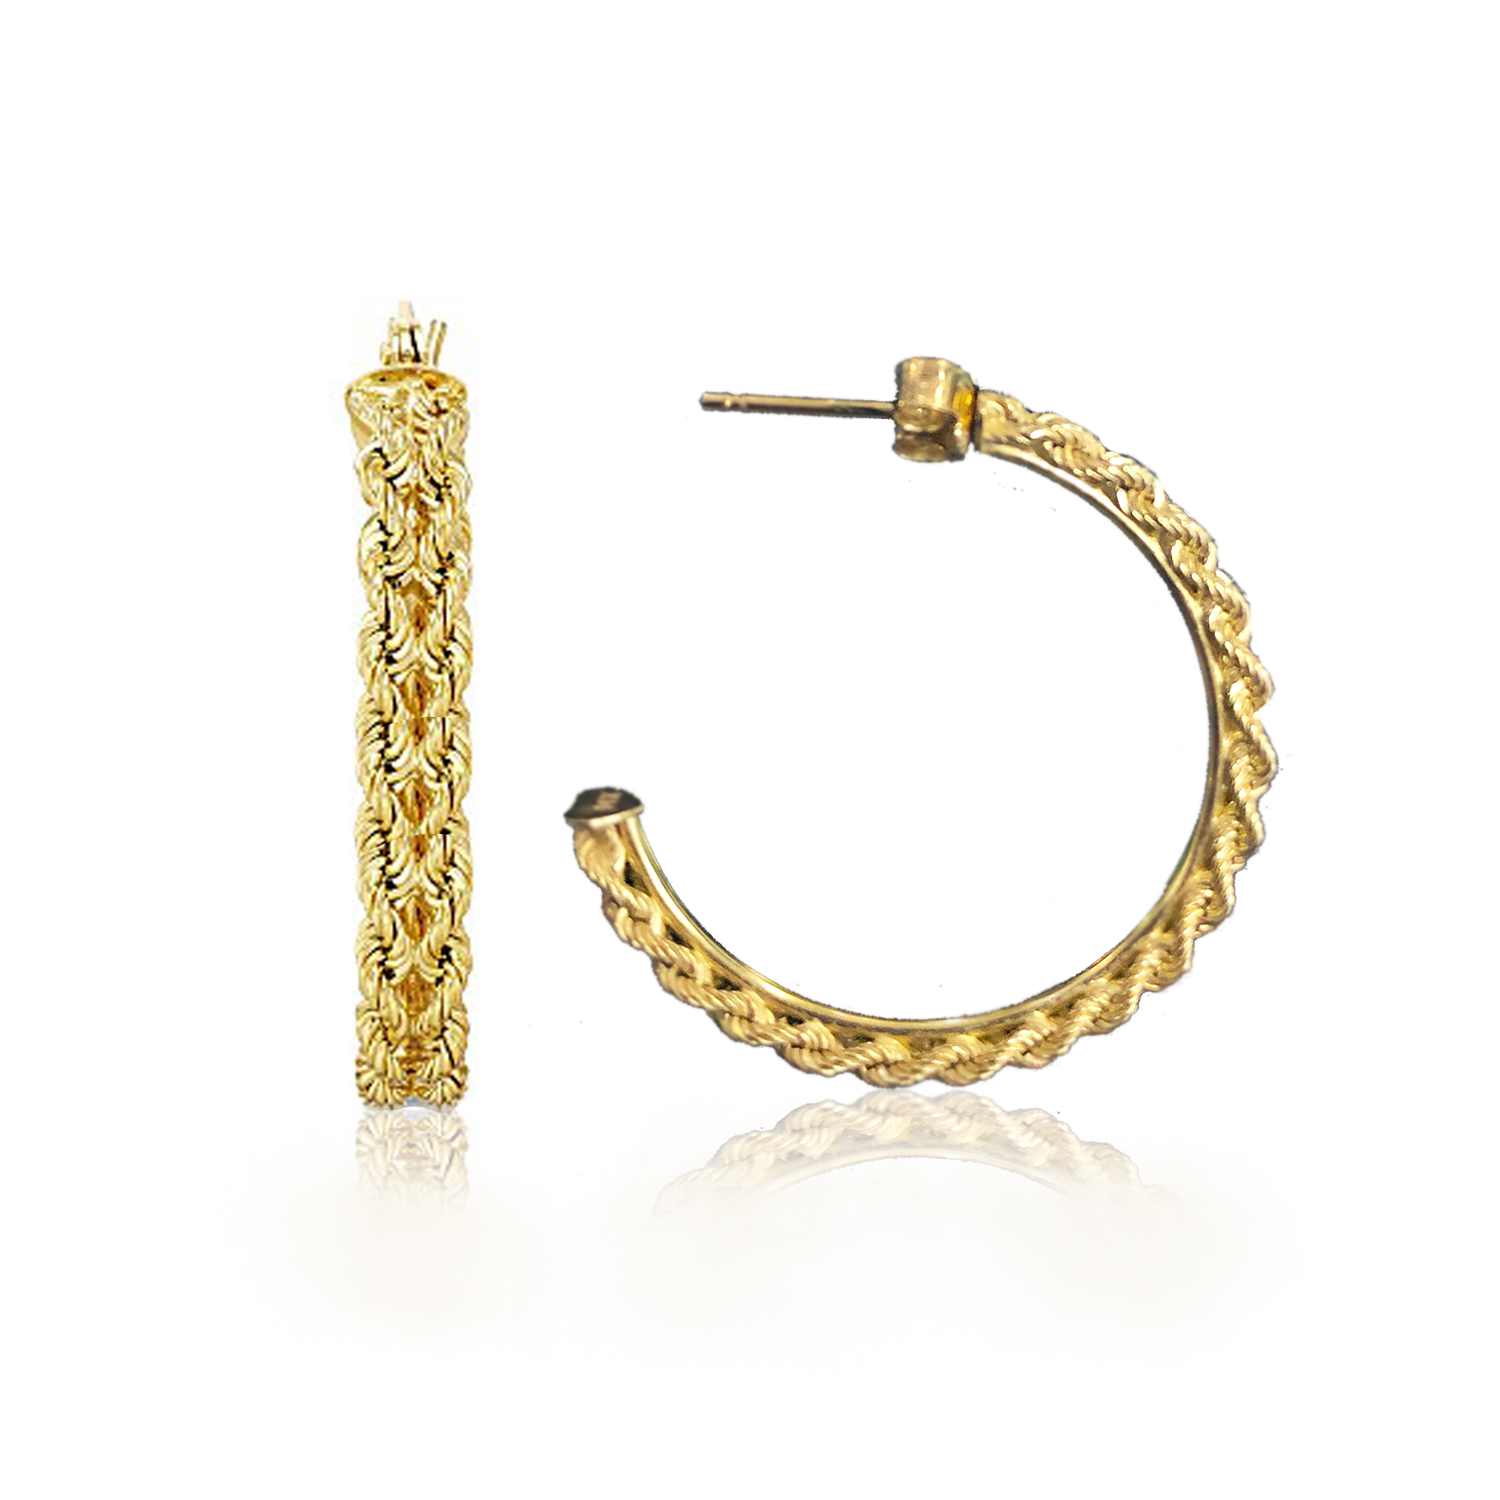 28mm Gold Braided Hoop Earrings